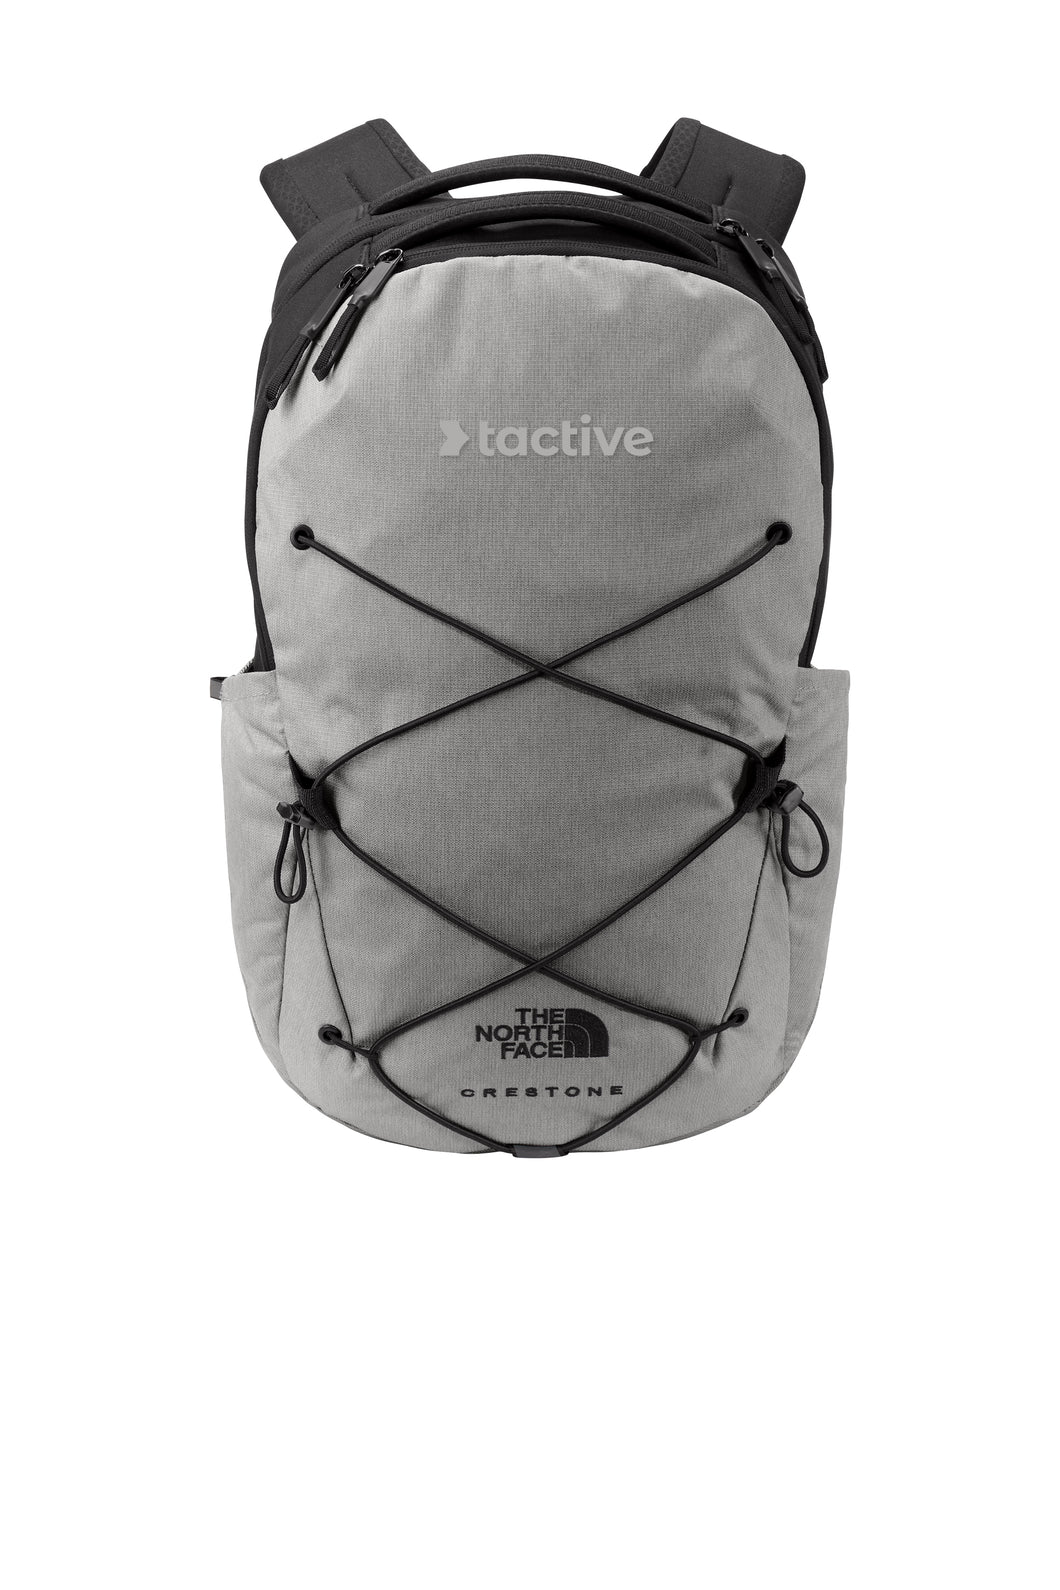 Tactive Crestone Backpack